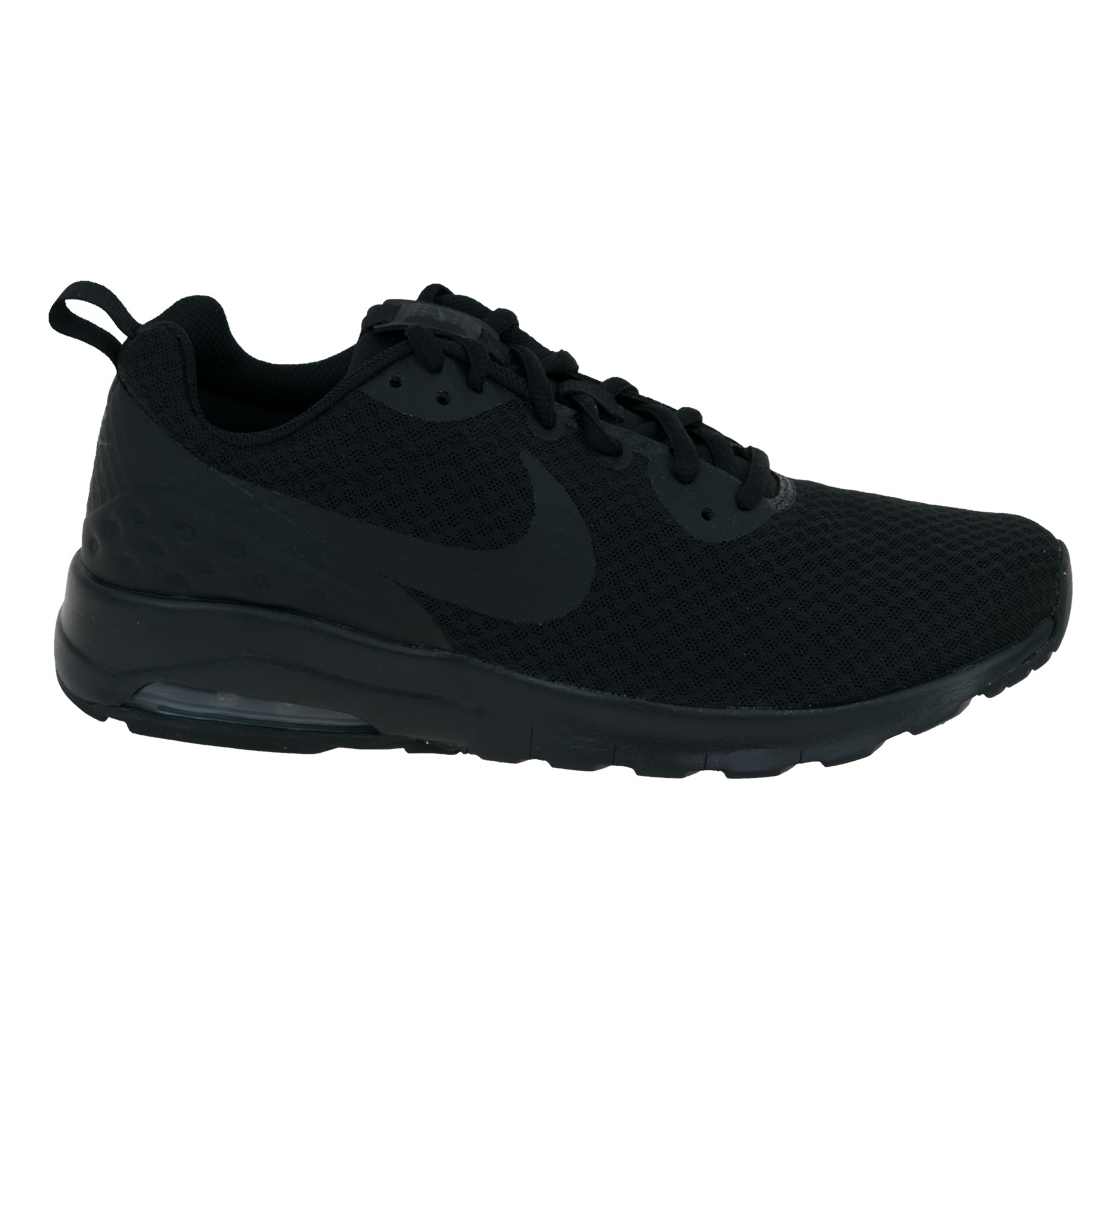 Nike Ανδρικό Παπούτσι Athleisure Air Max Motion Lw 833260